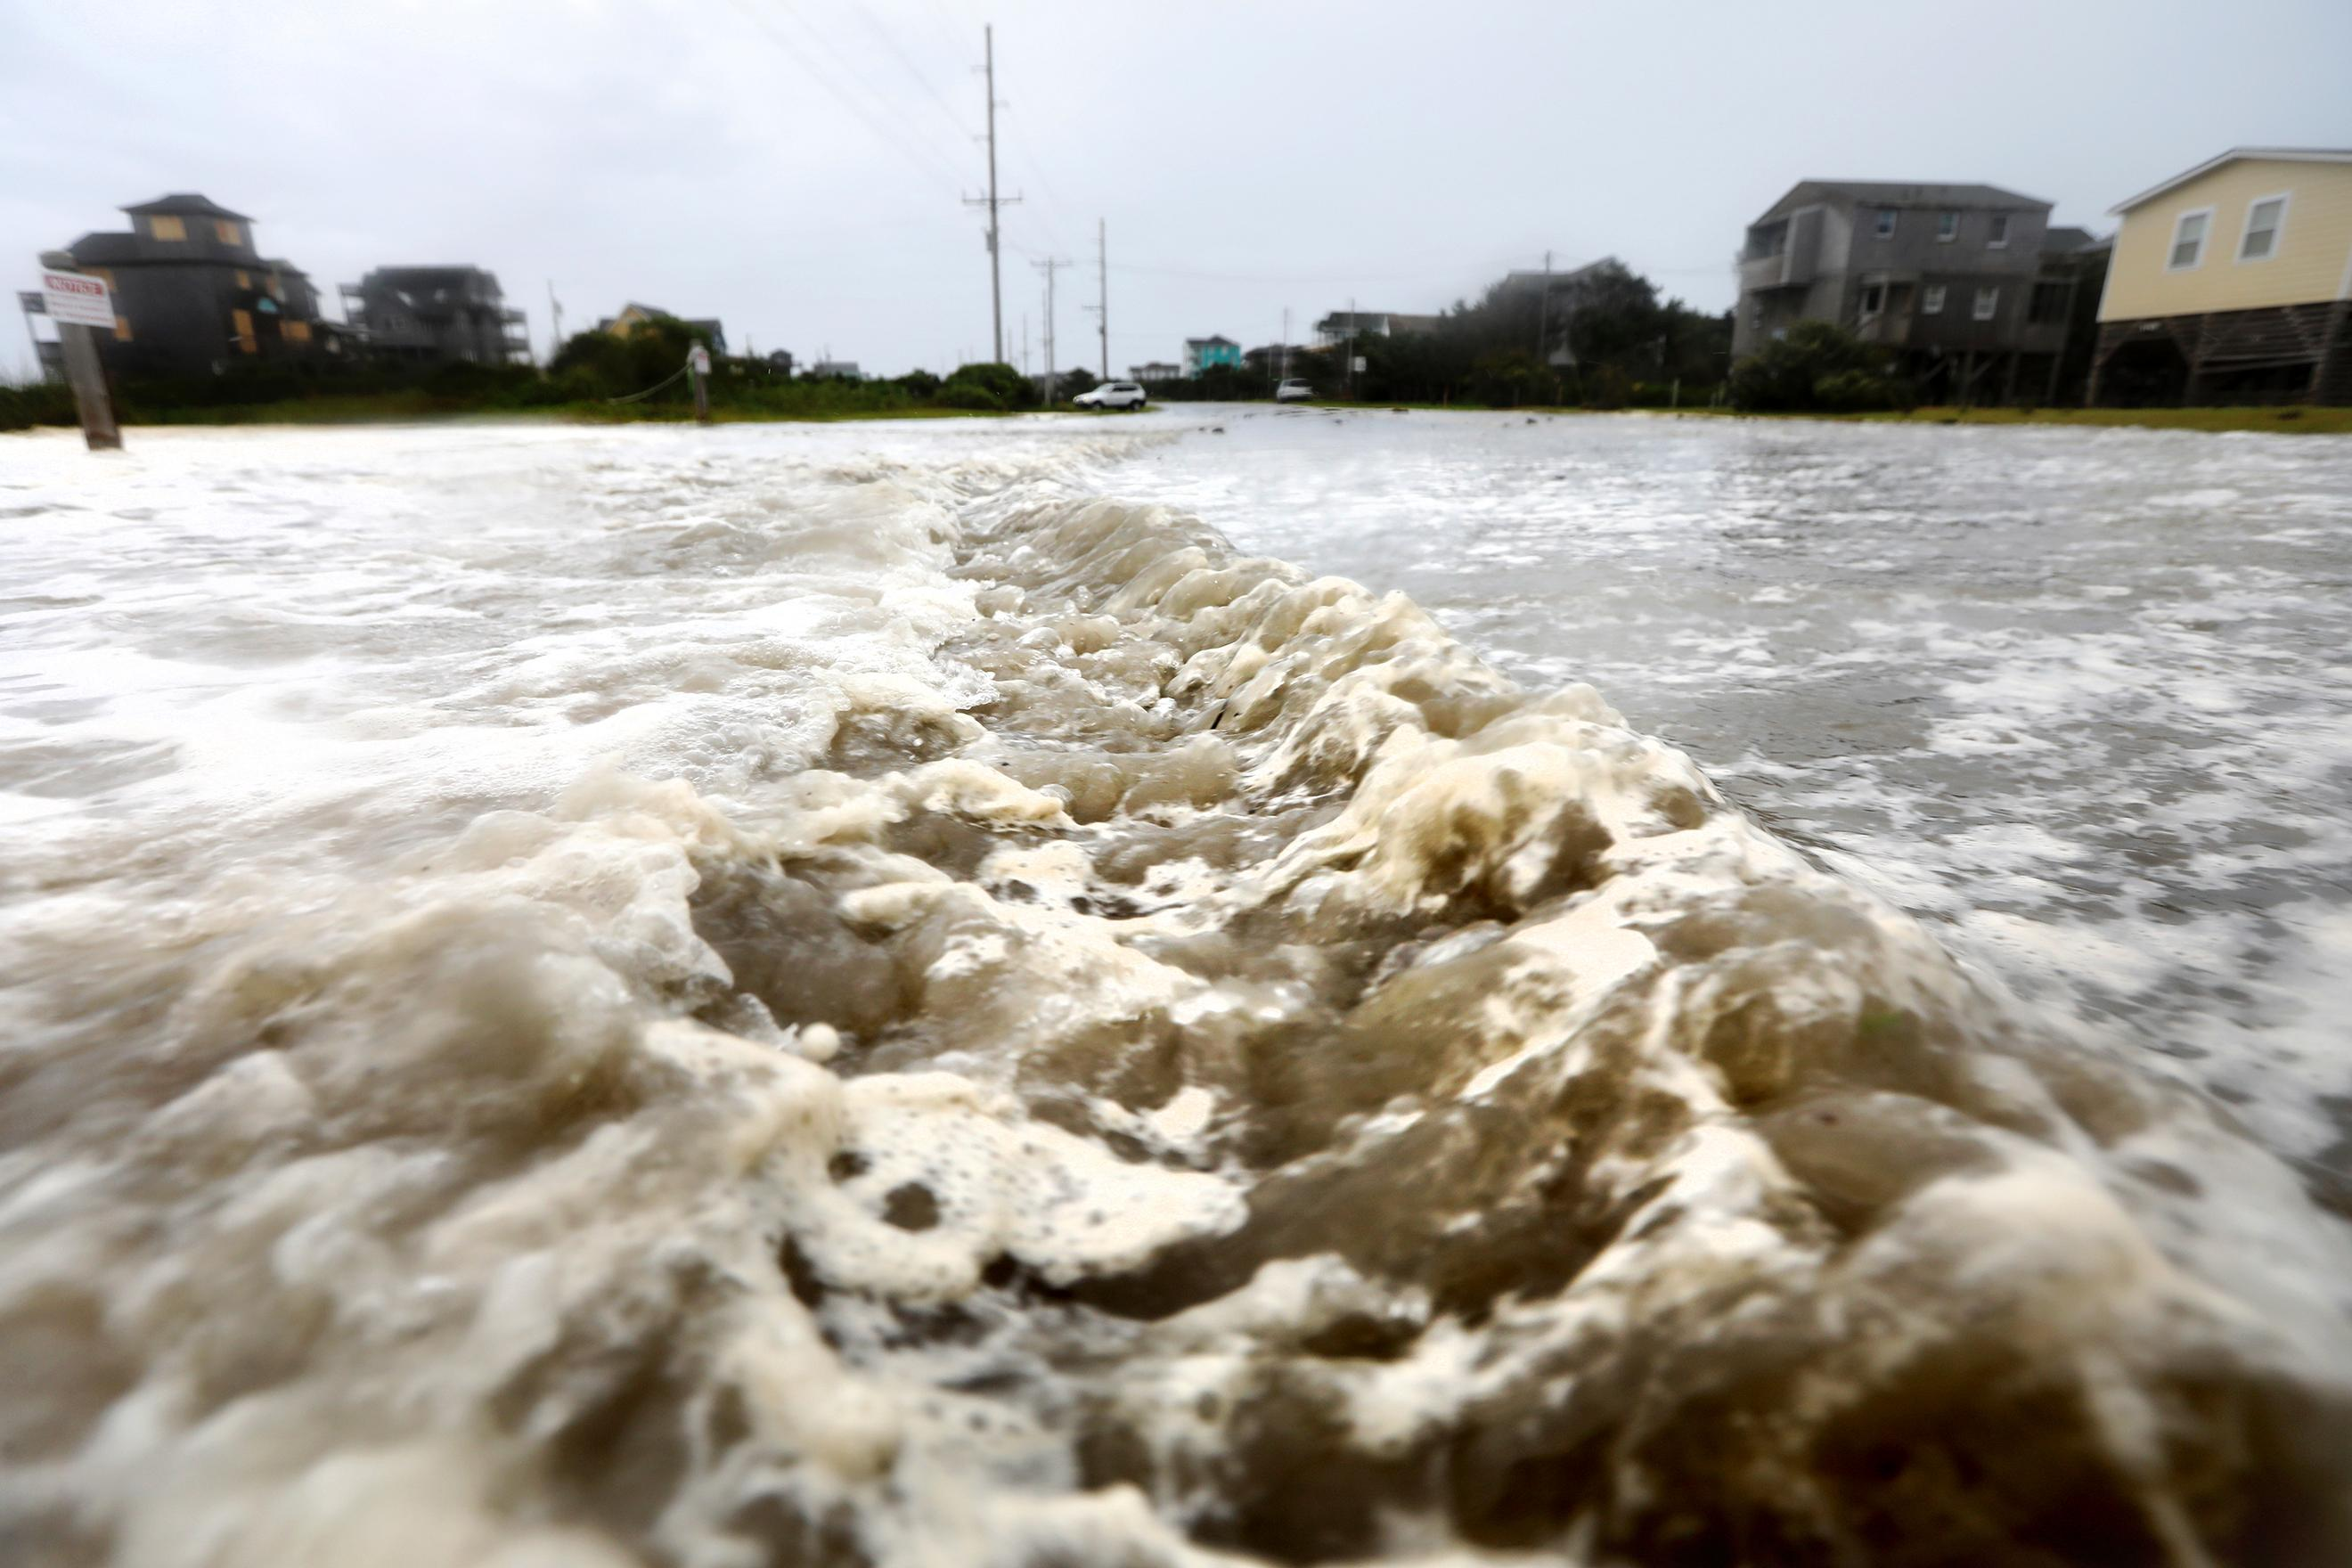 Ocean waters rushes down Hwy 12 in Frisco, N.C., on Hatteras Island as the effects of Hurricane Florence breach the dune line on Thursday, Sept. 13, 2018.  (Steve Earley /The Virginian-Pilot via AP)